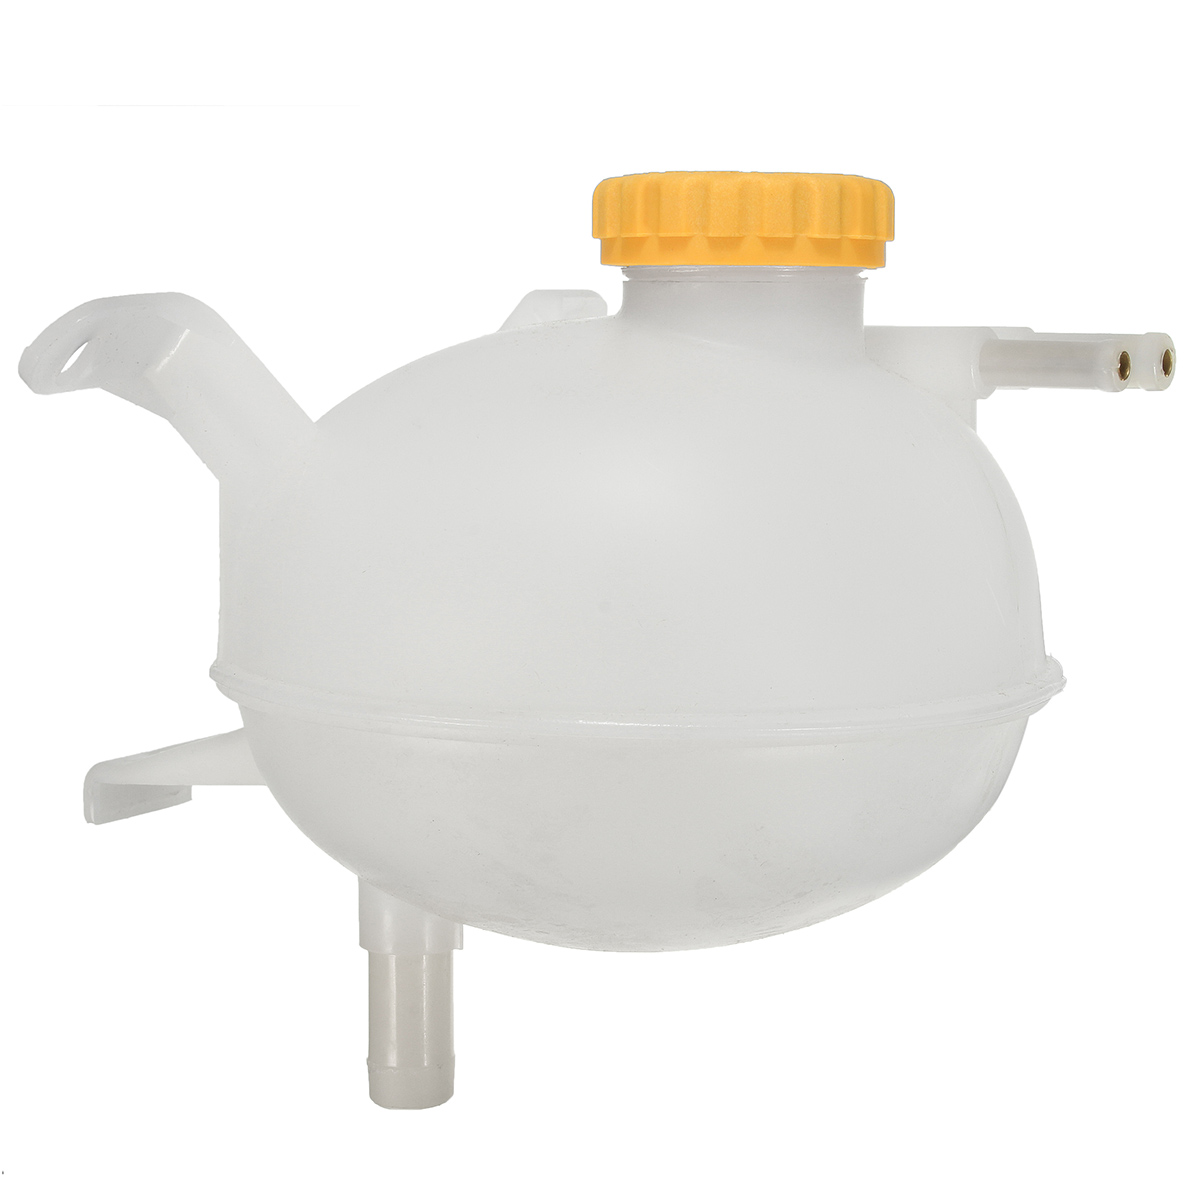 Buy Radiator Tank Expansion And Get Free Shipping On Kia Sedona Coolant Reservoir